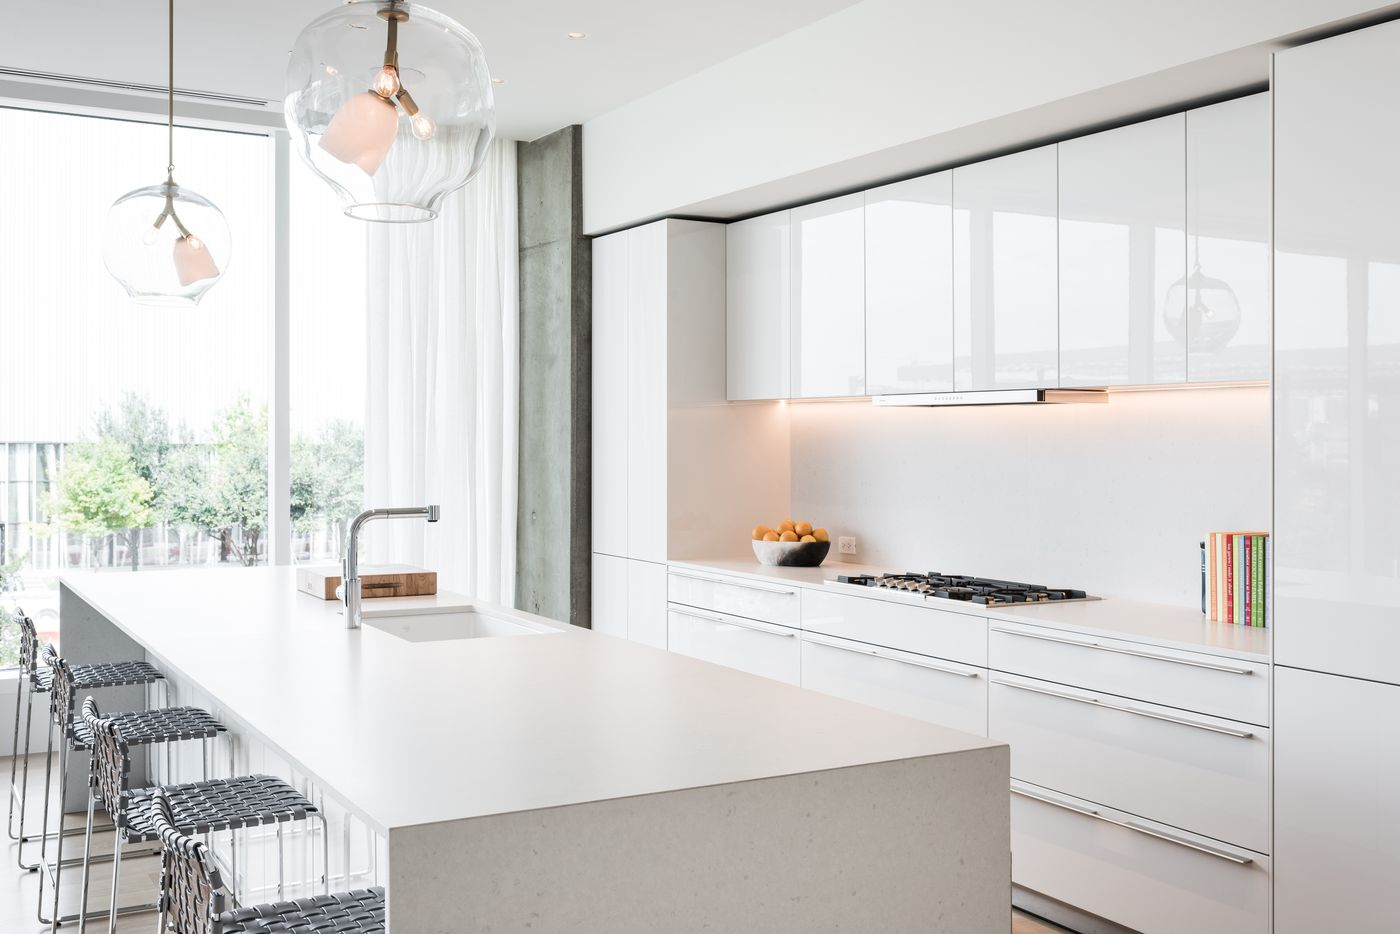 The model kitchen in the Hall Arts Residences building in downtown Dallas.